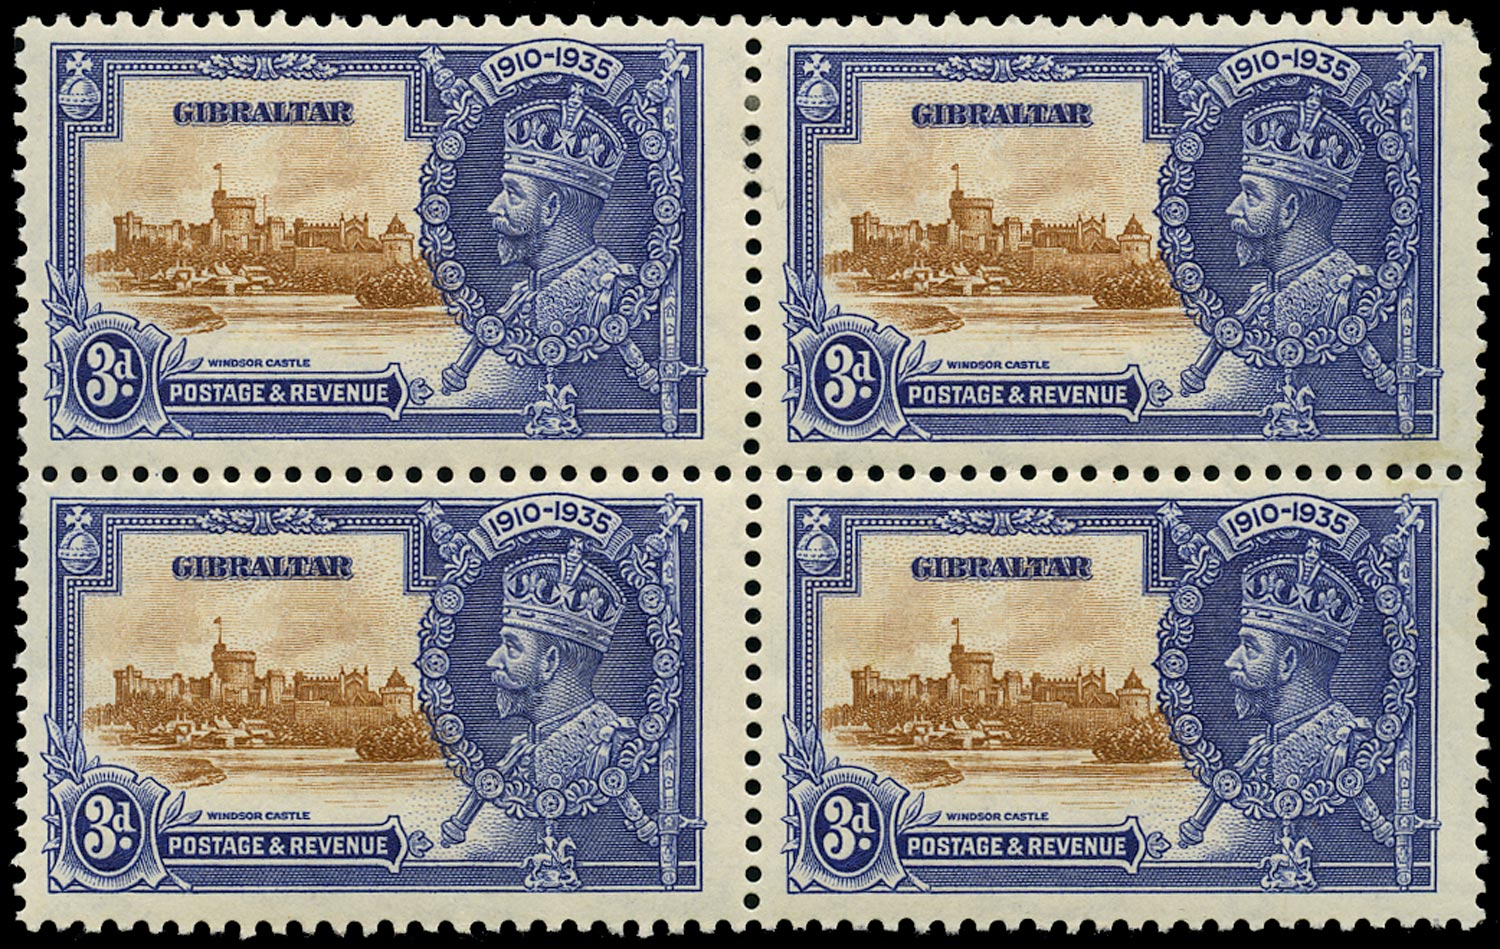 GIBRALTAR 1935  SG115a Mint Silver Jubilee 3d brown and deep blue variety Extra flagstaff